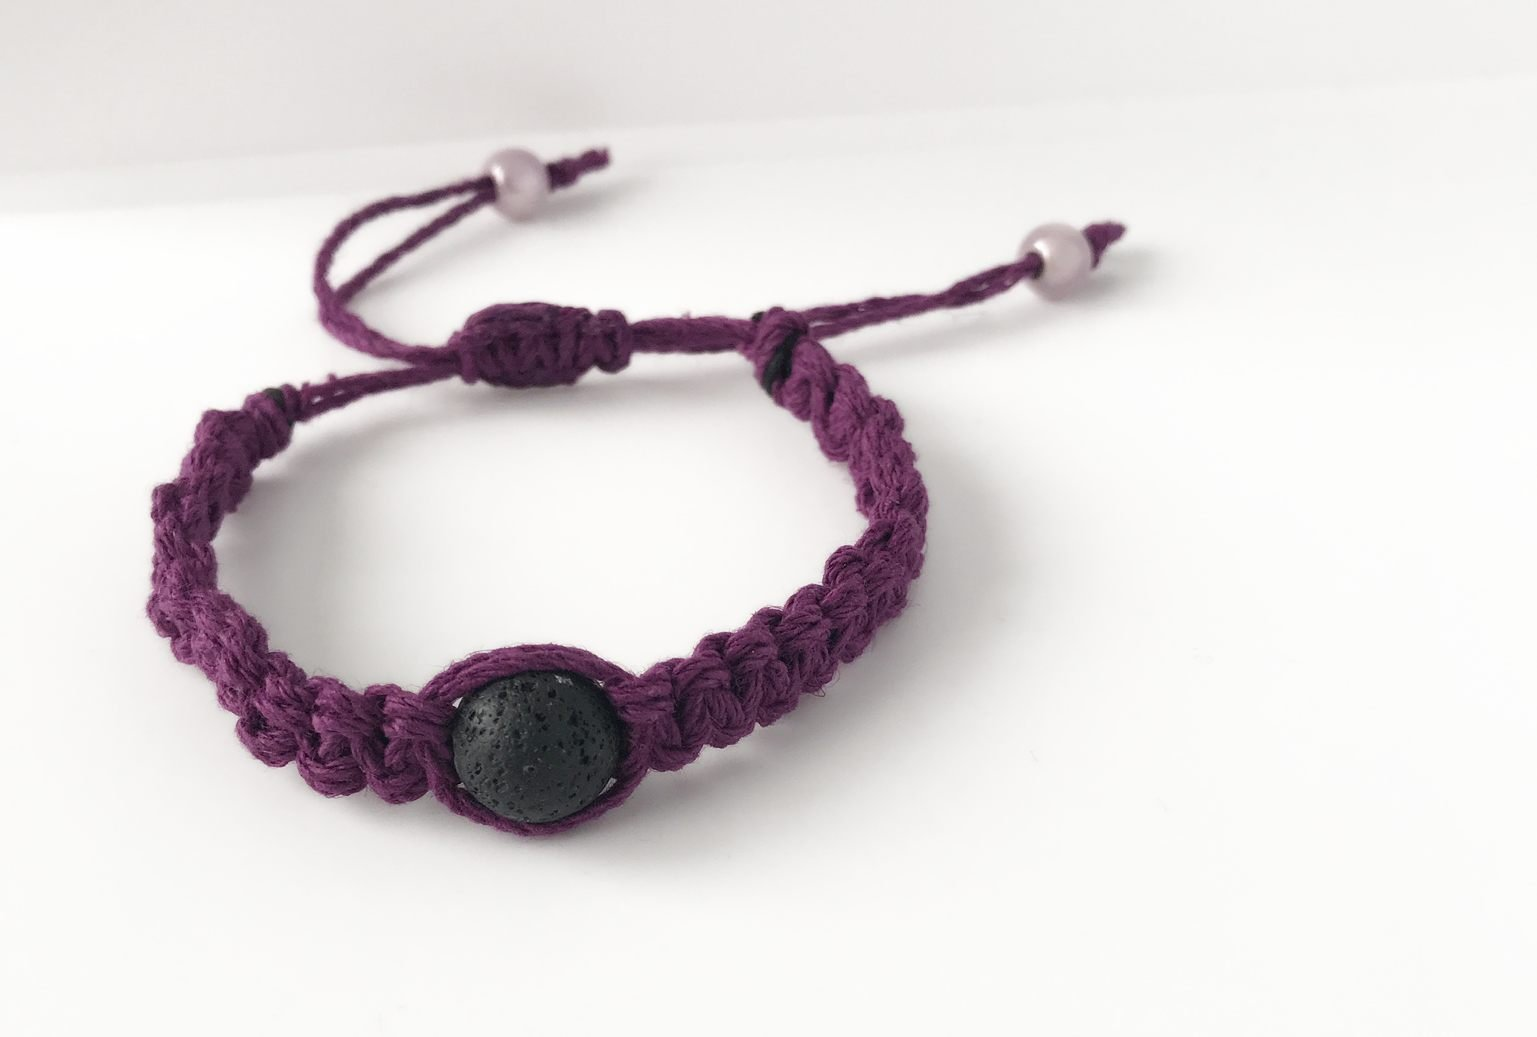 How To Make A Simple Essential Oil Diffuser Bracelet